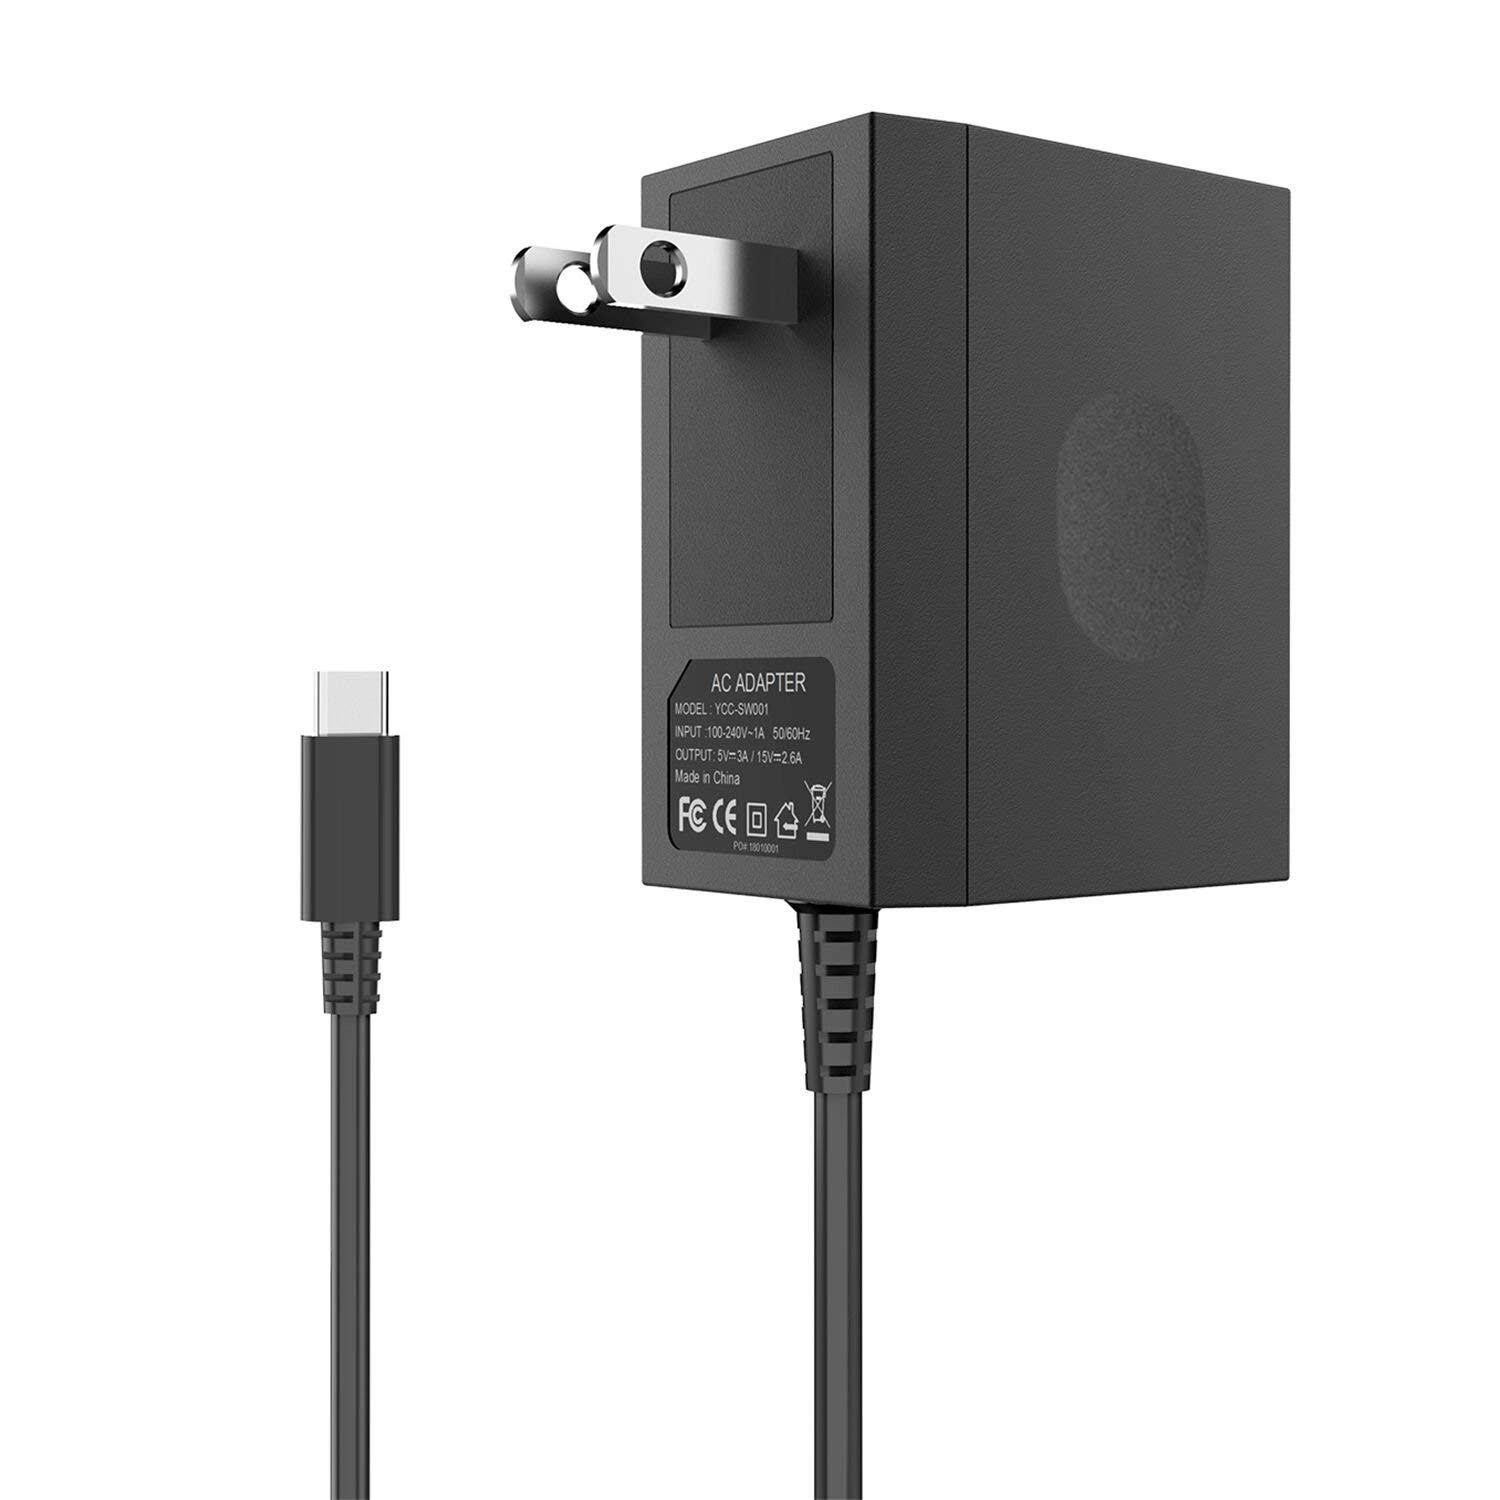 Switch Charger for Nintendo Switch, AC Power Supply Adapter Compatible with Nintendo Switch, 15V/2.6A Support TV Mode, Fast Charger for Nintendo Switch